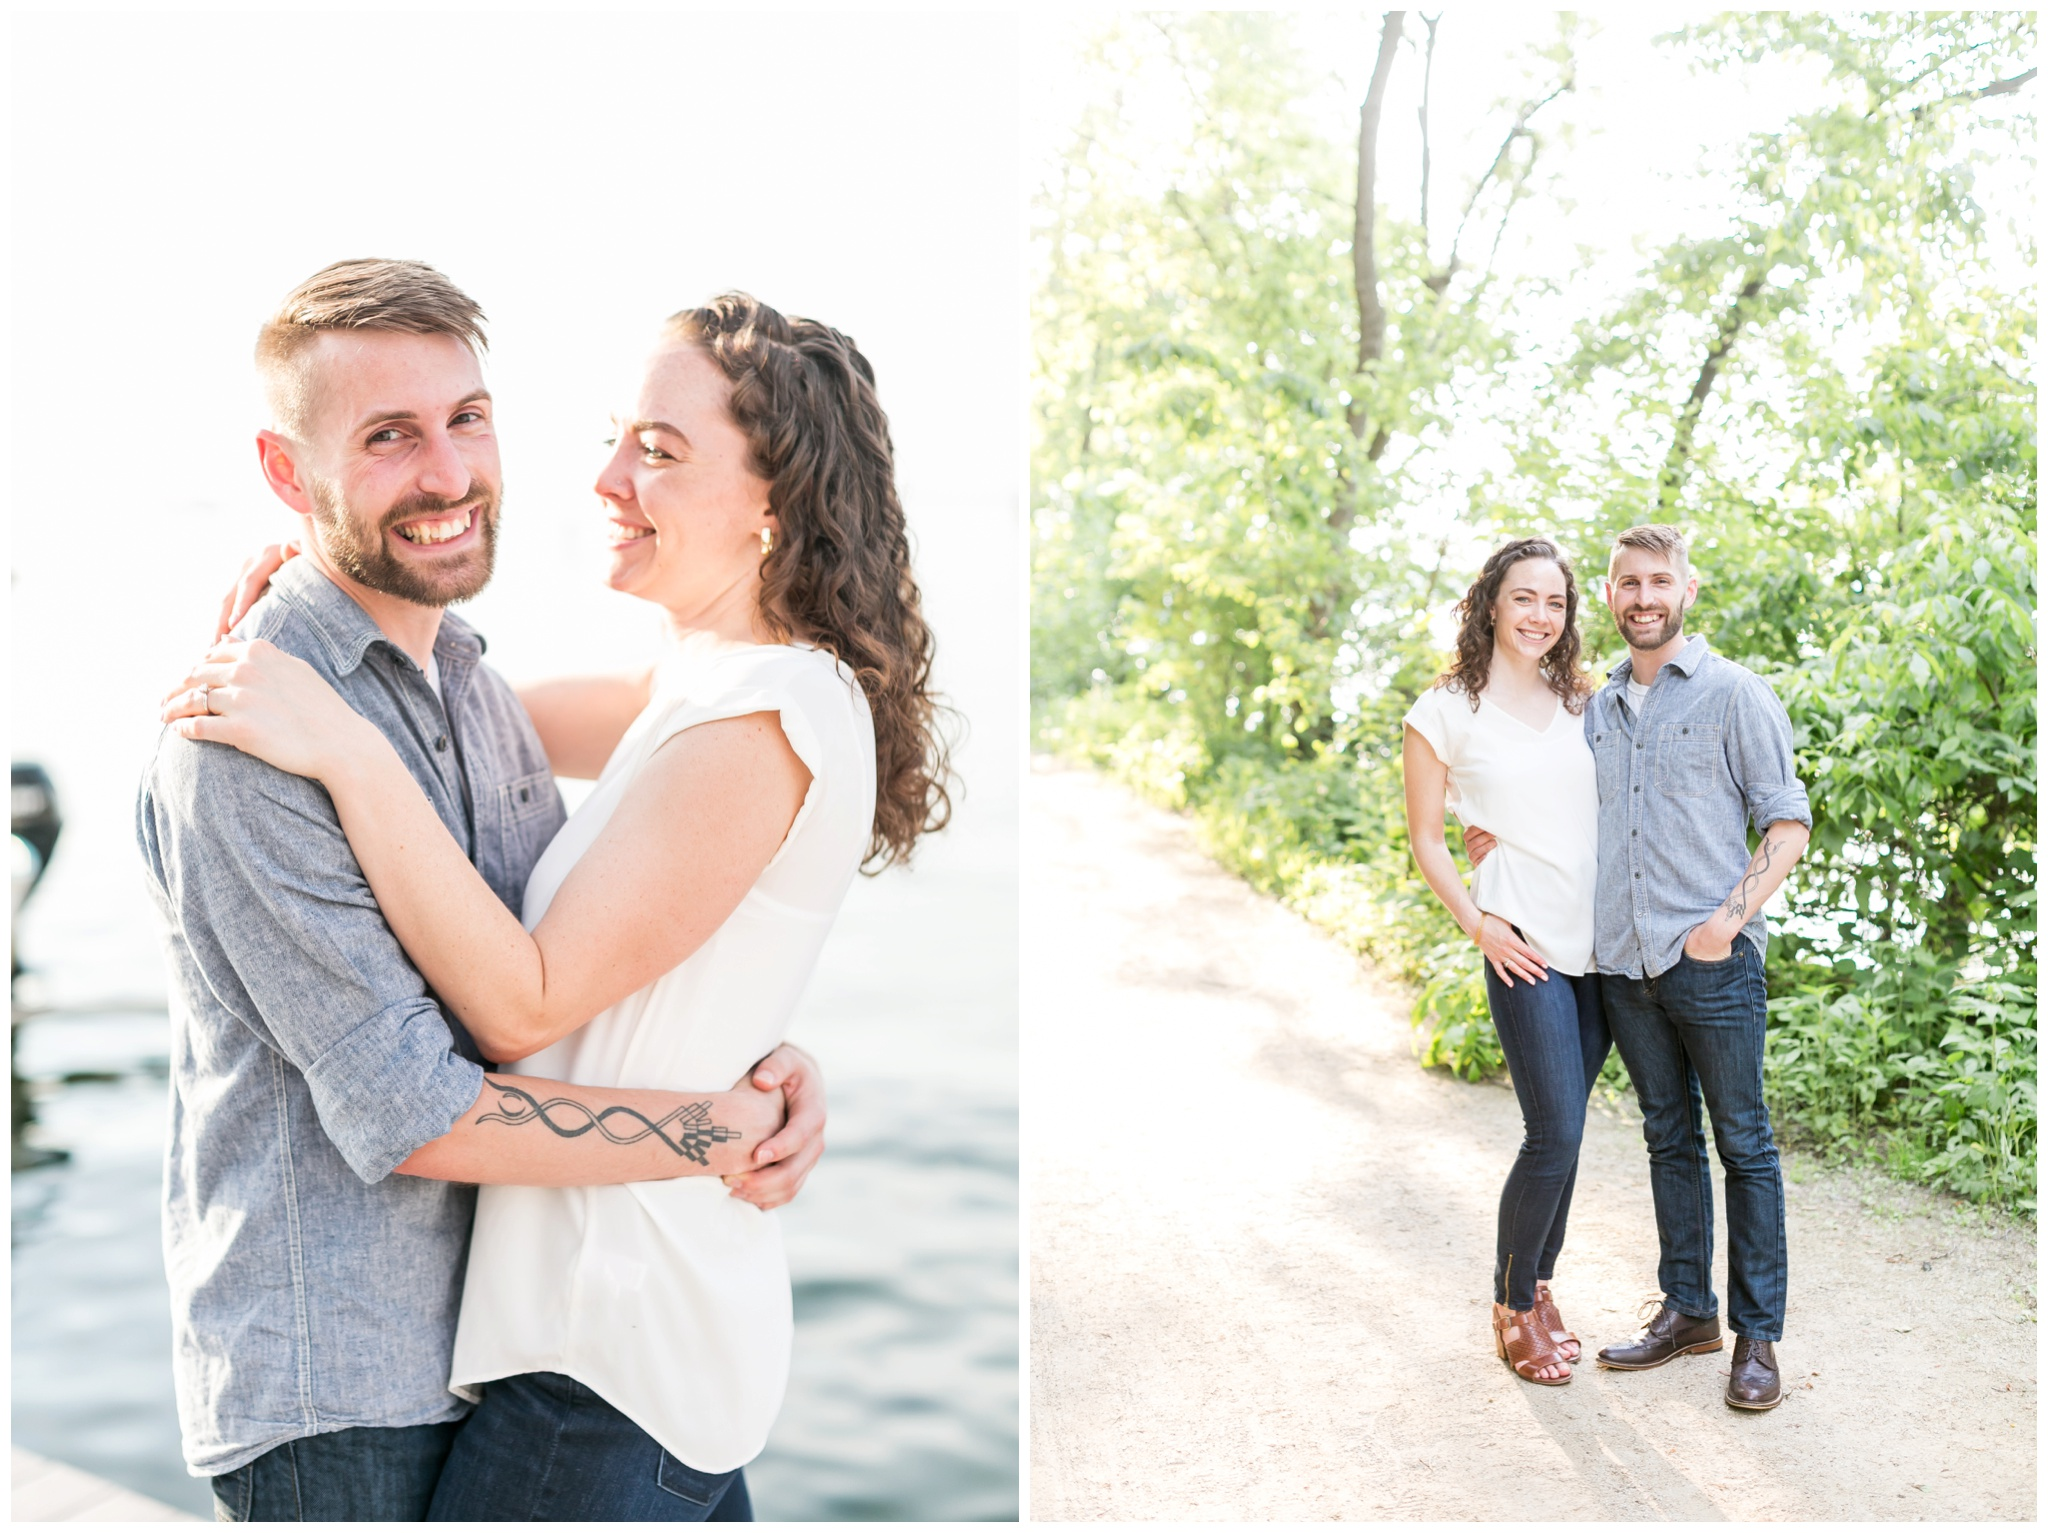 memorial_union_engagement_session_madison_wisconsin_photographers_3795.jpg